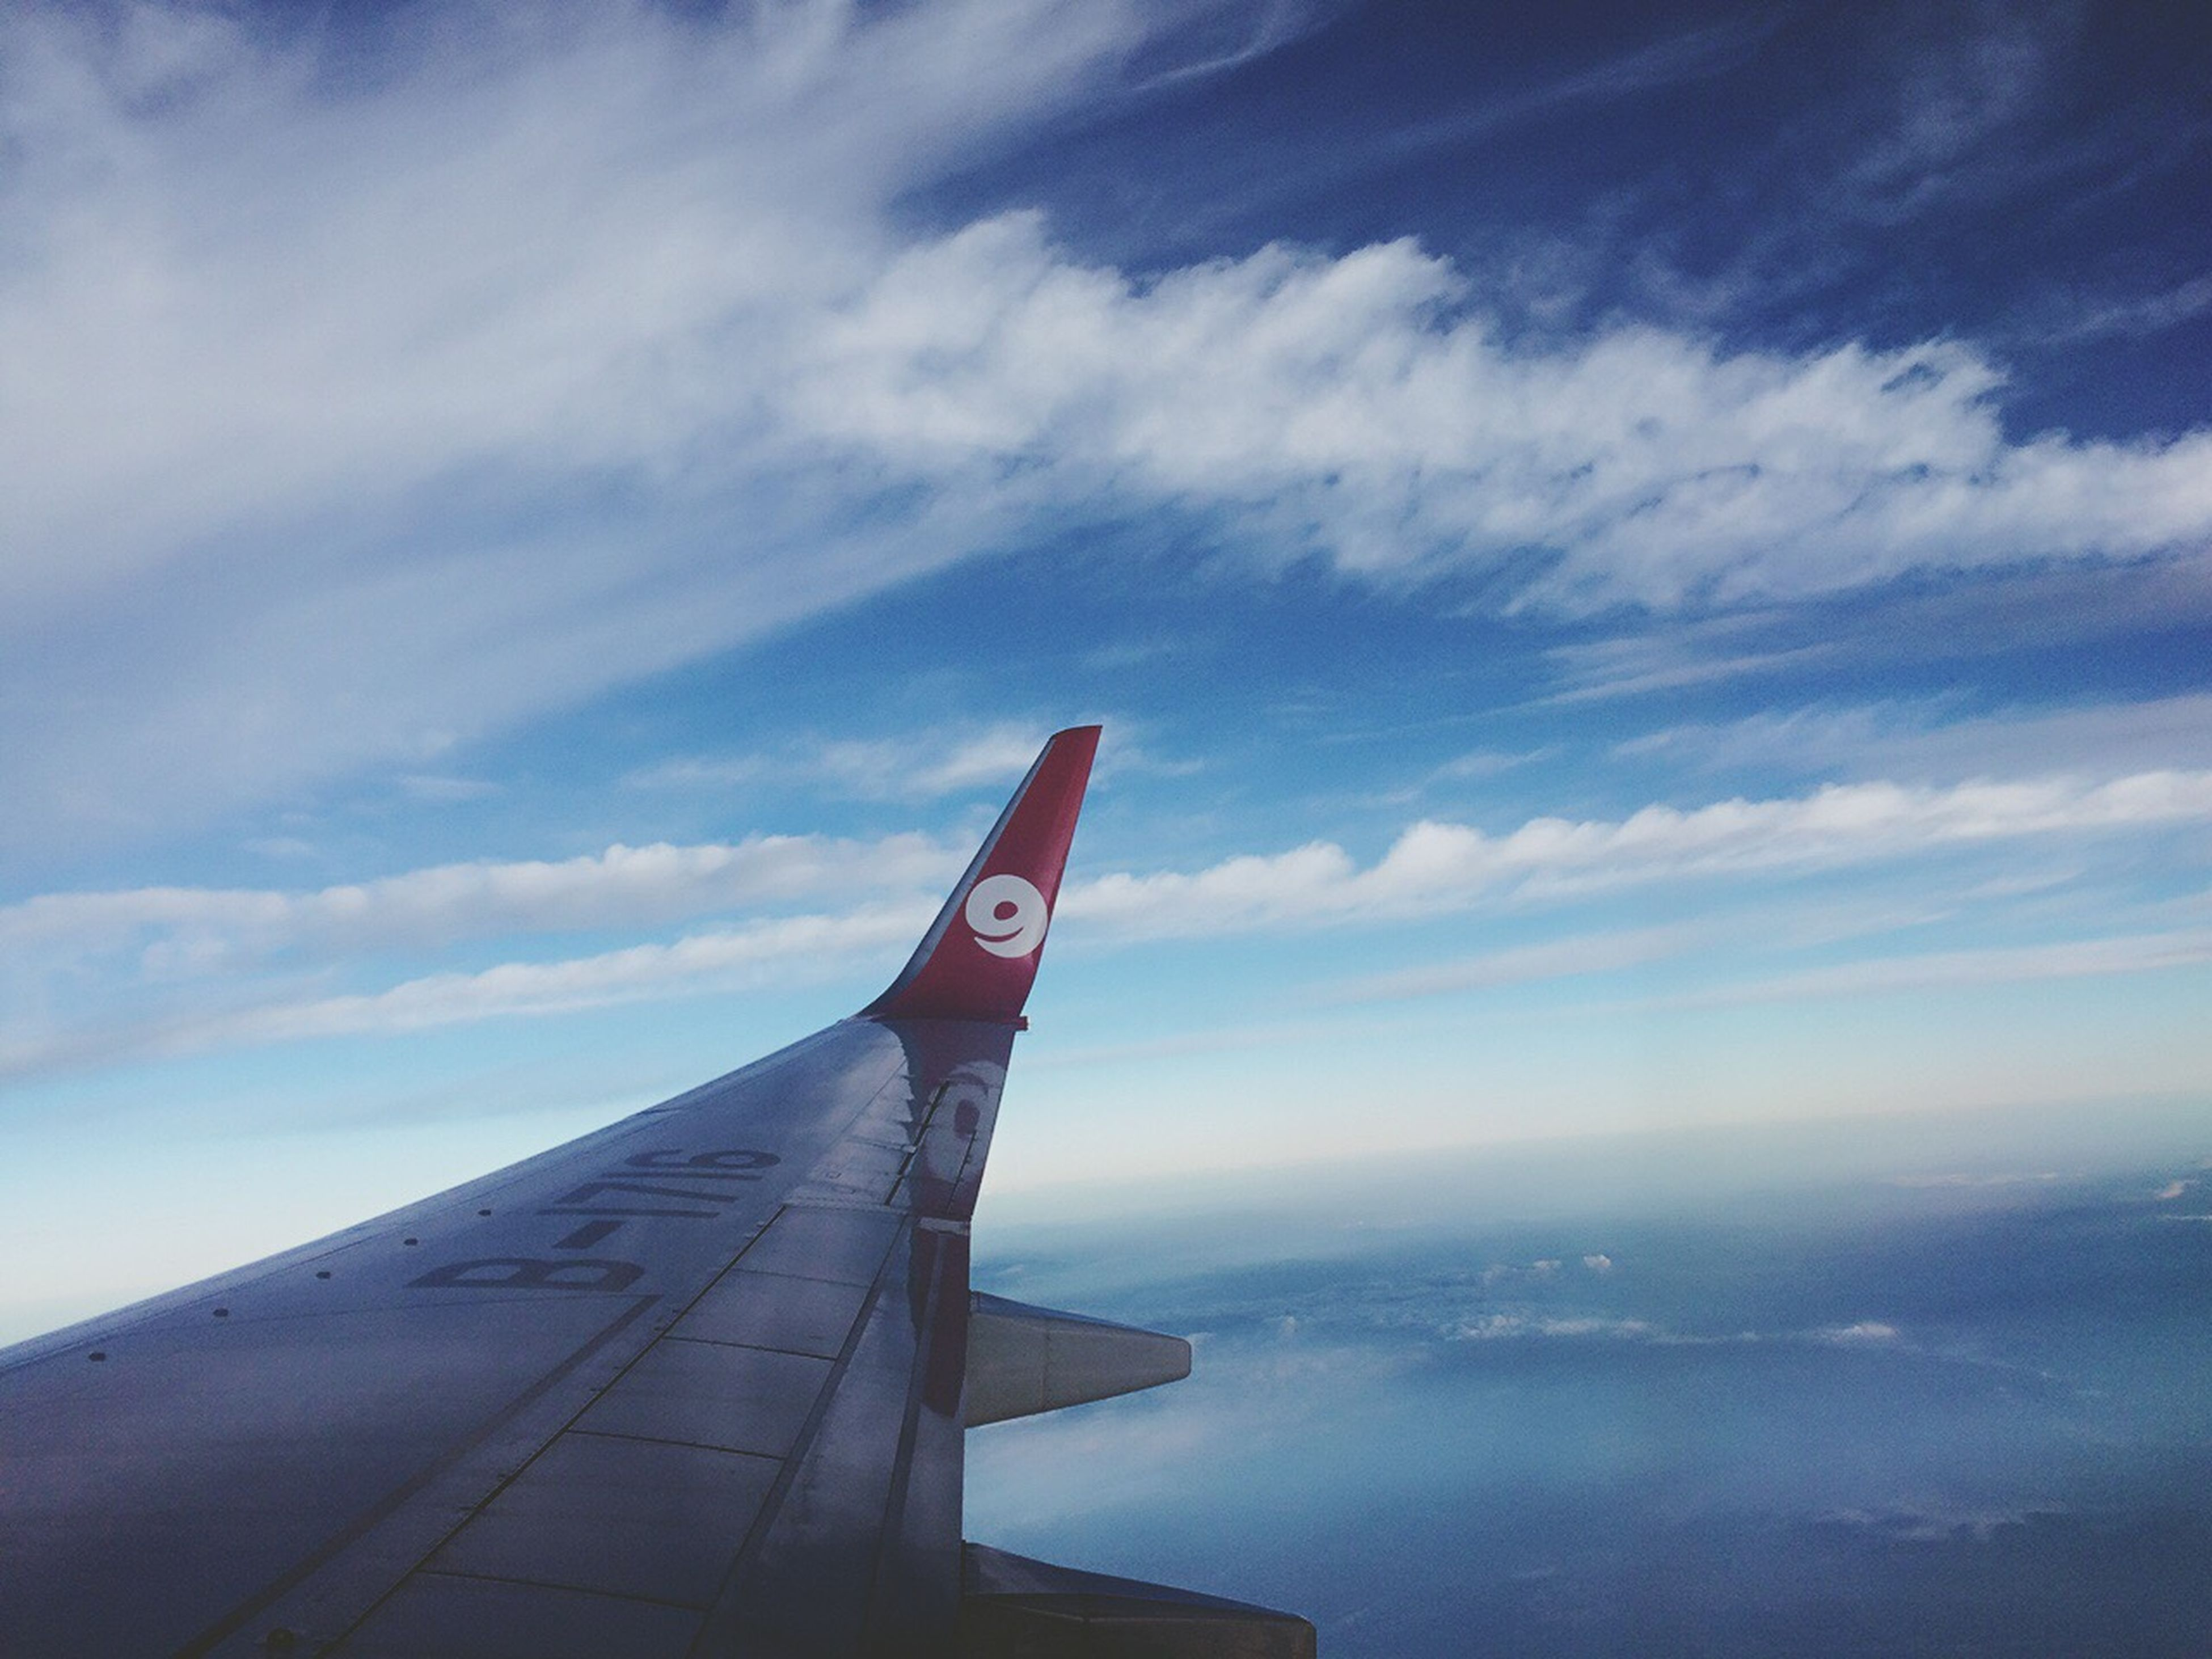 sky, cloud - sky, no people, sea, outdoors, day, water, airplane, beauty in nature, nature